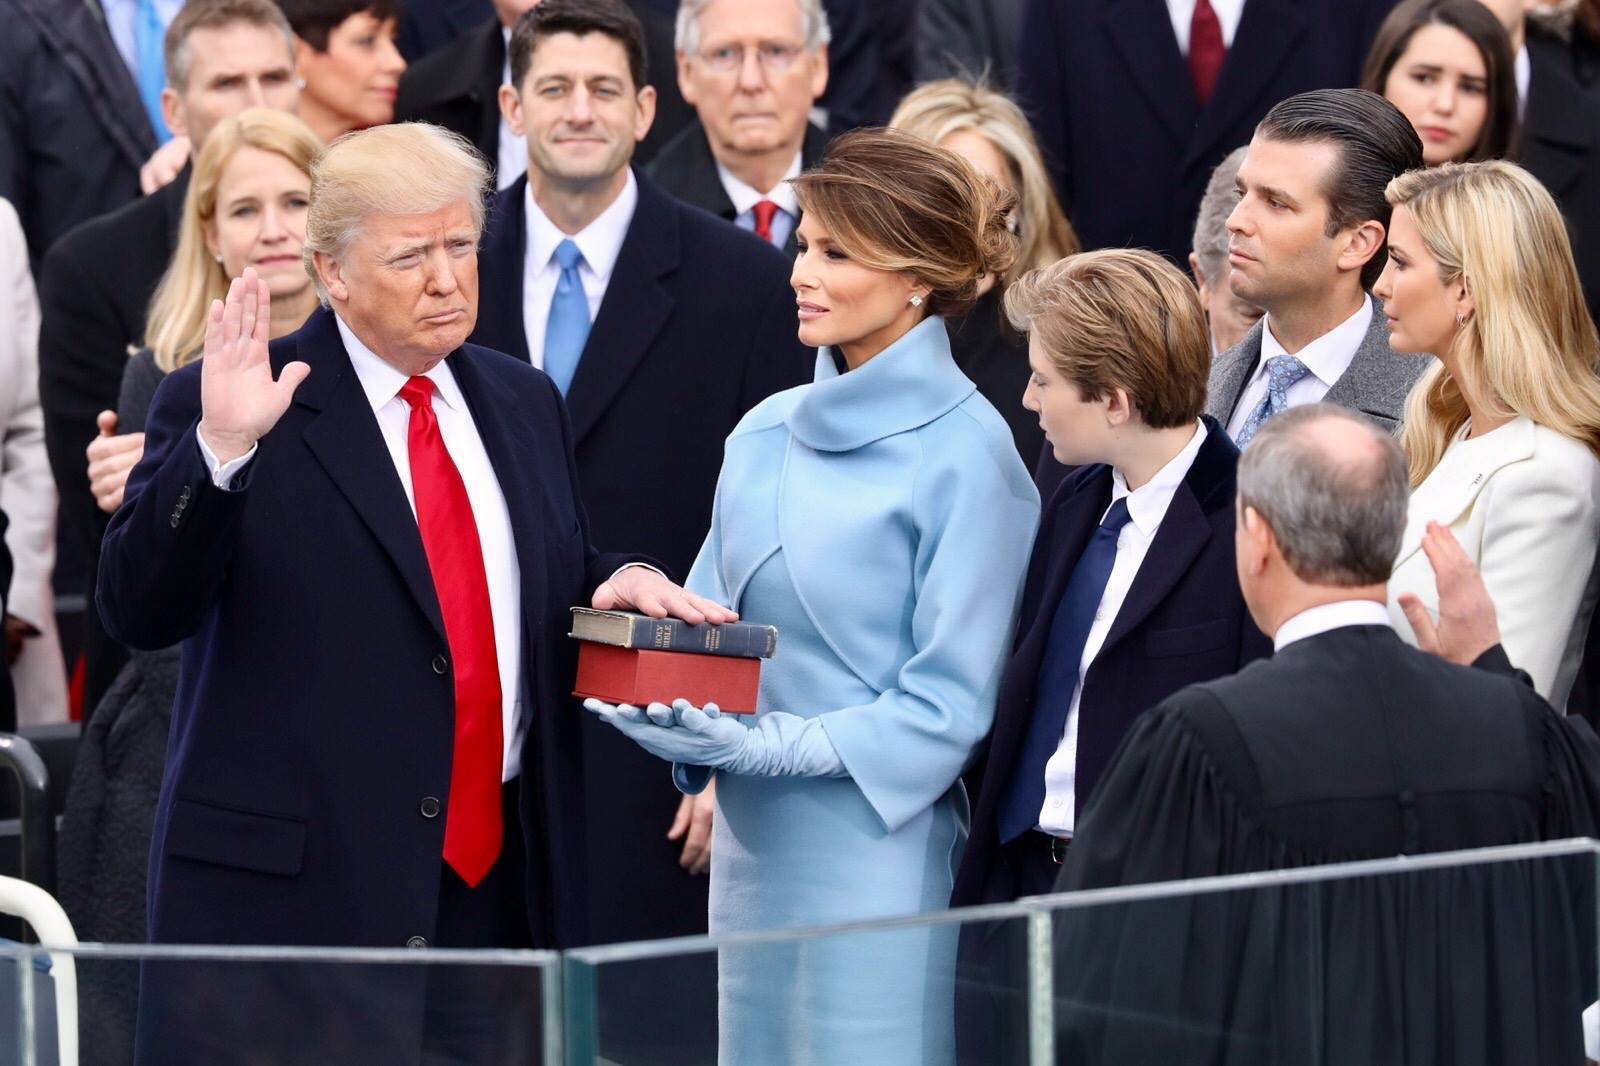 Donald Trump swearing in ceremony Public Domain